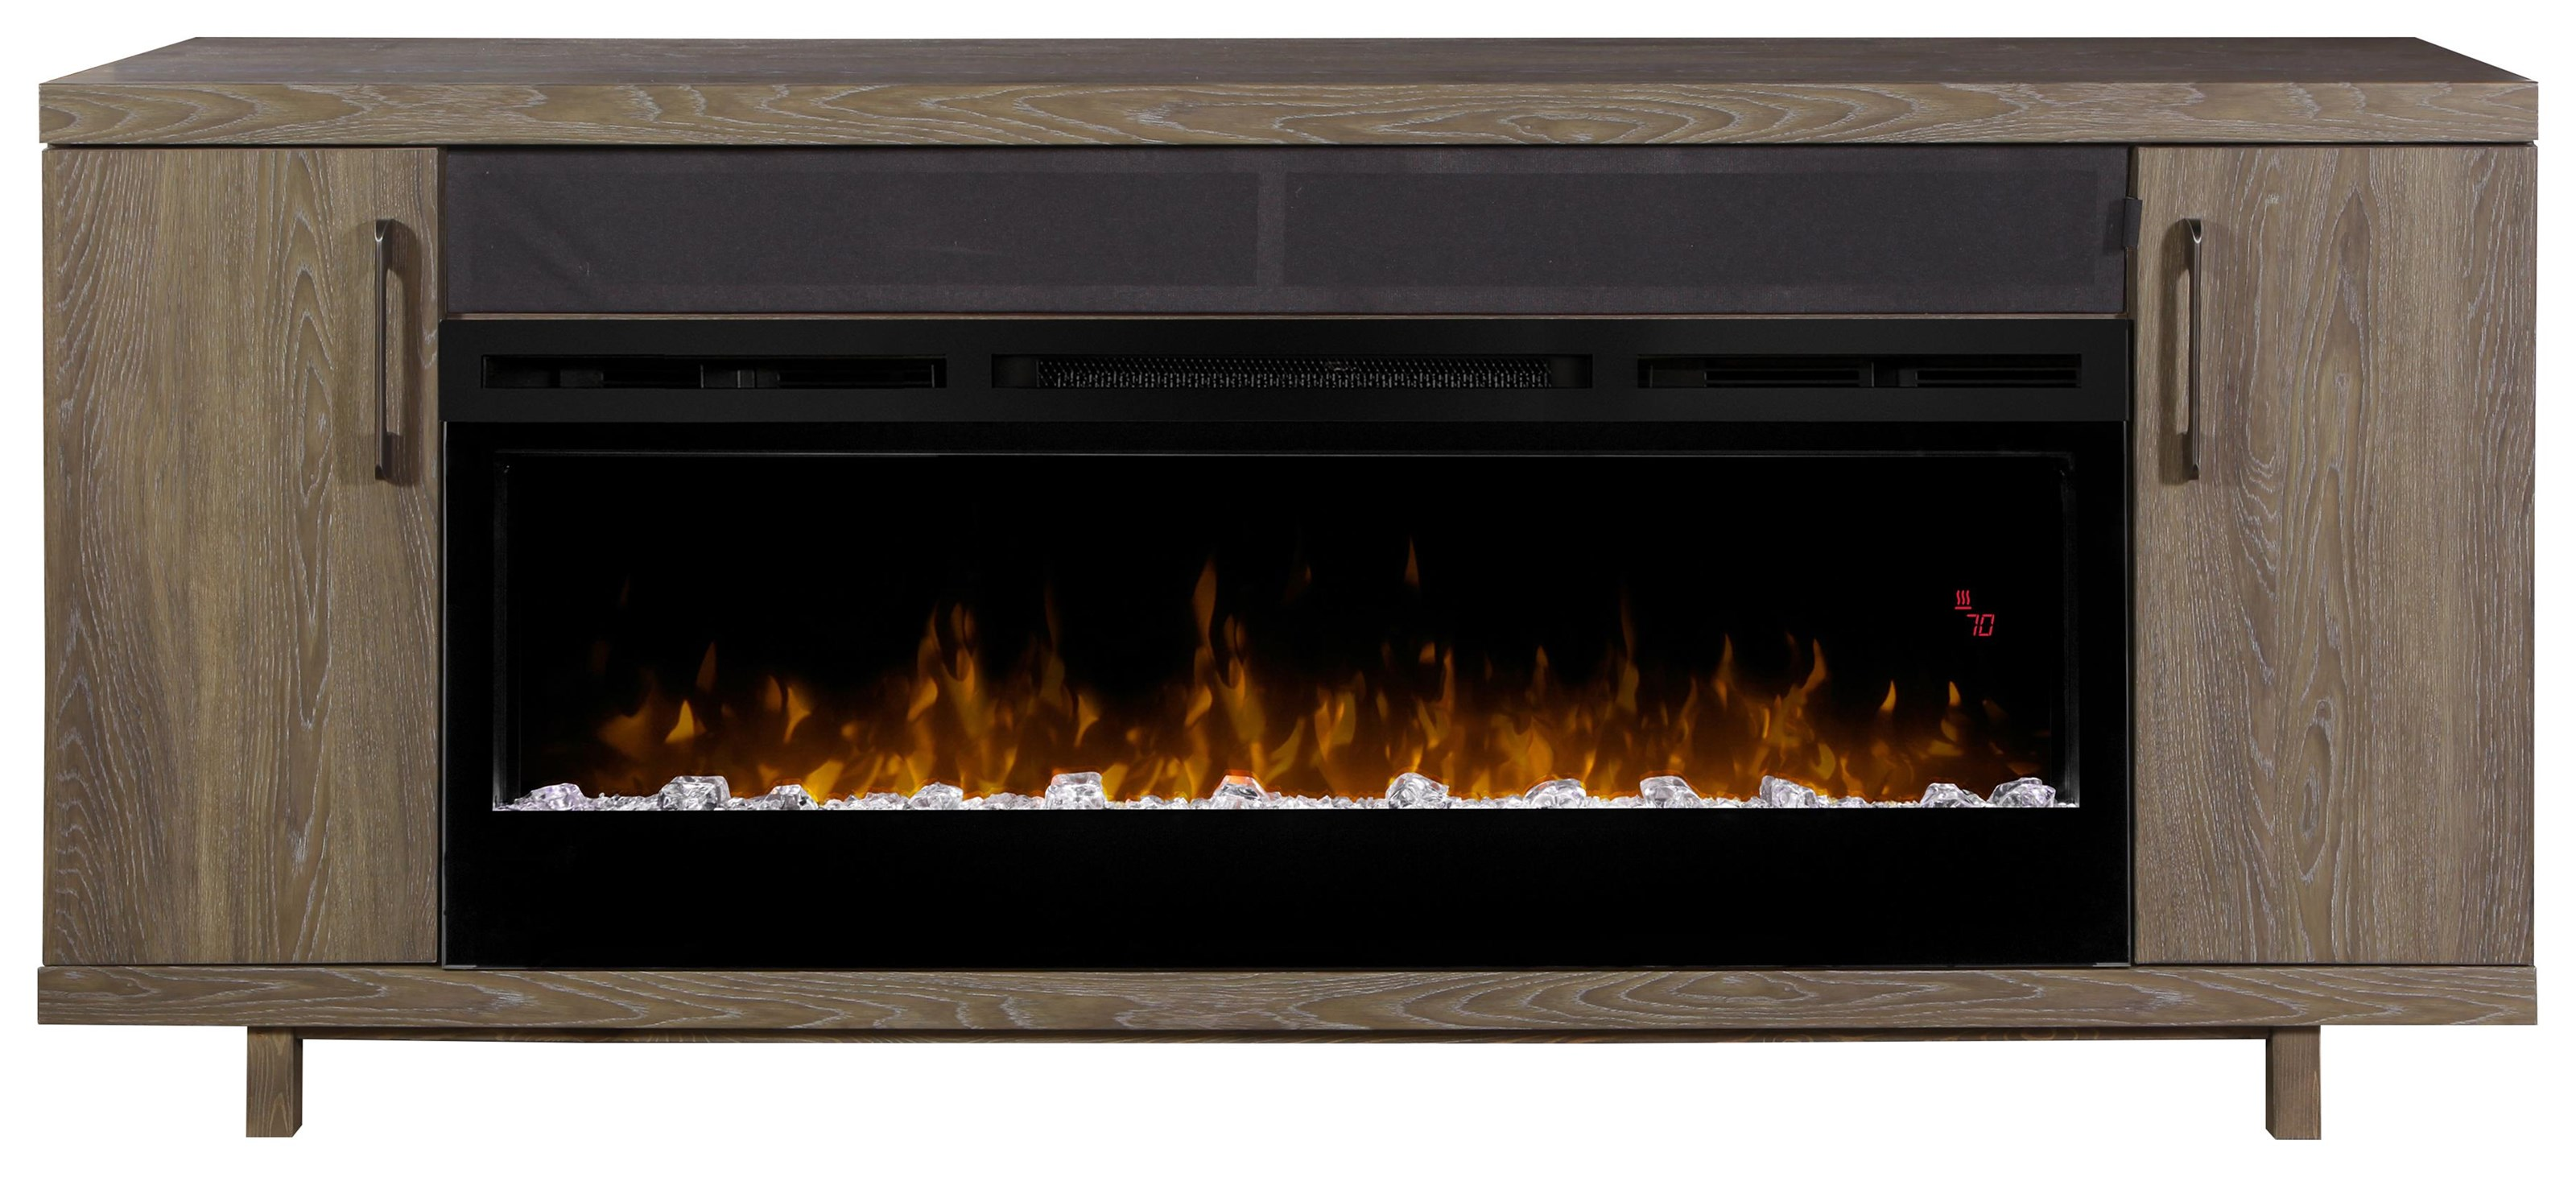 Marvin Media Console Fireplace by Dimplex at Darvin Furniture